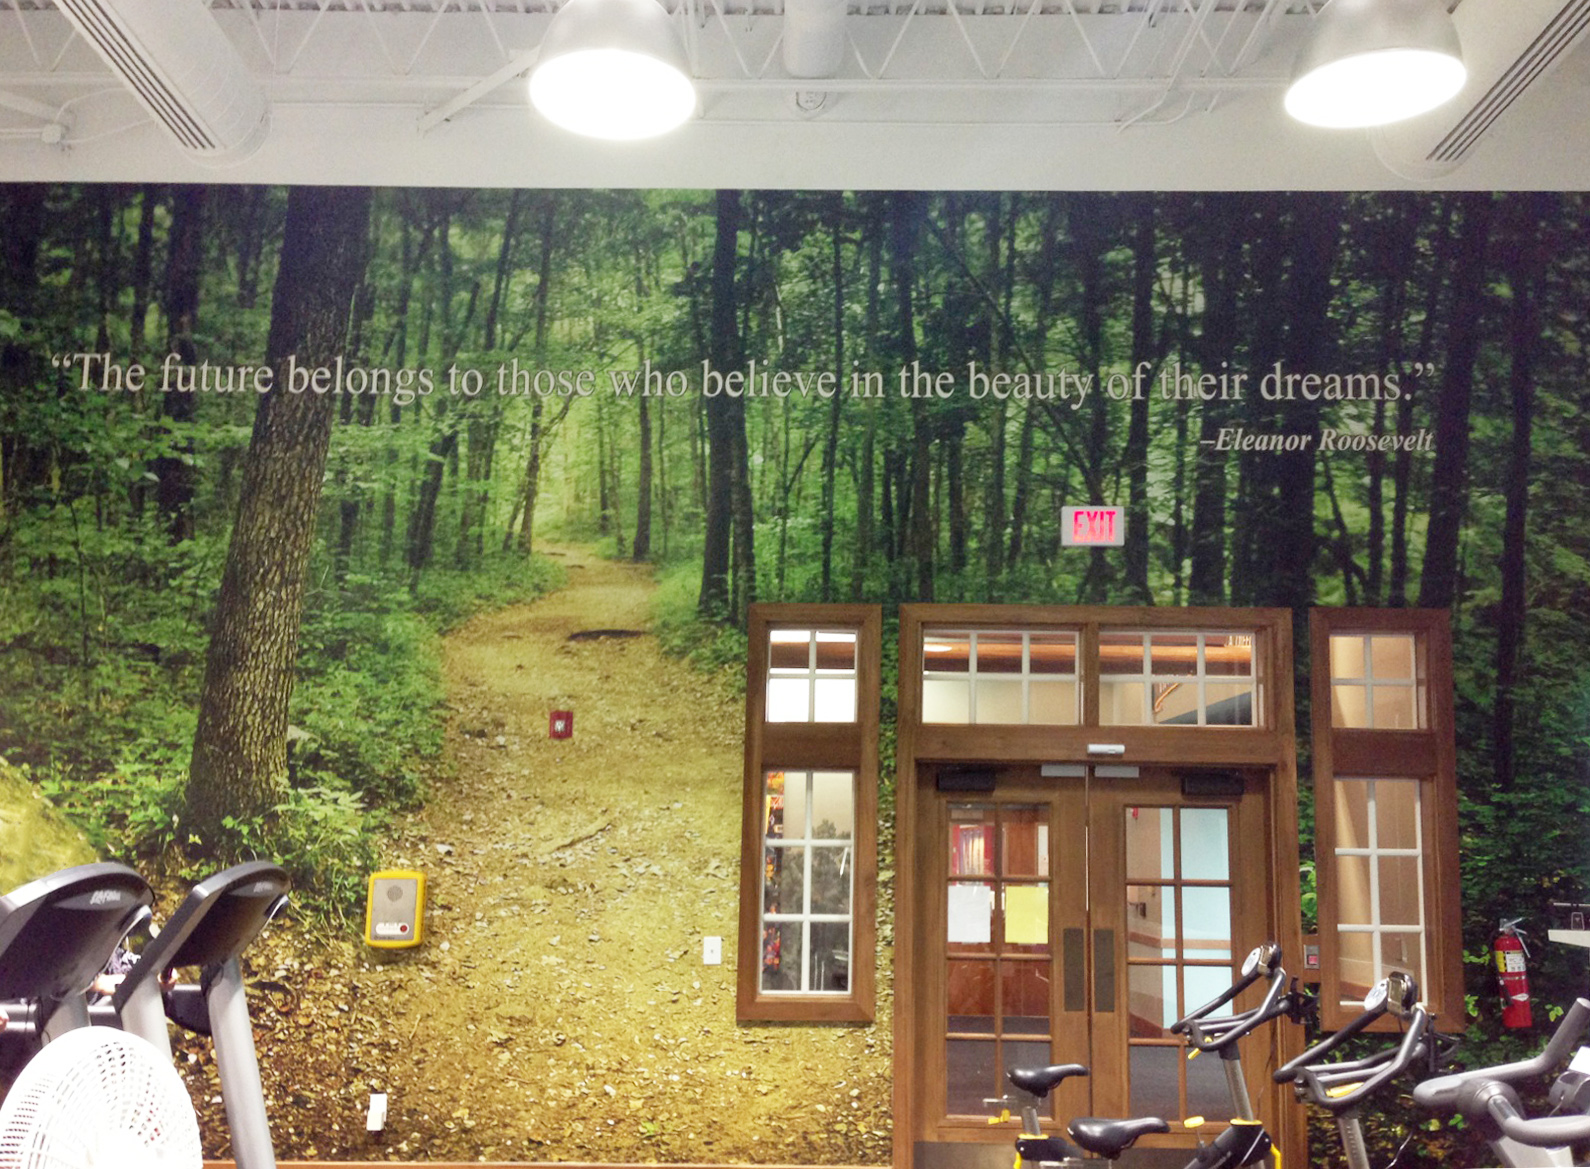 Nature Wallpaper Murals Bass Pro Wall mural w text